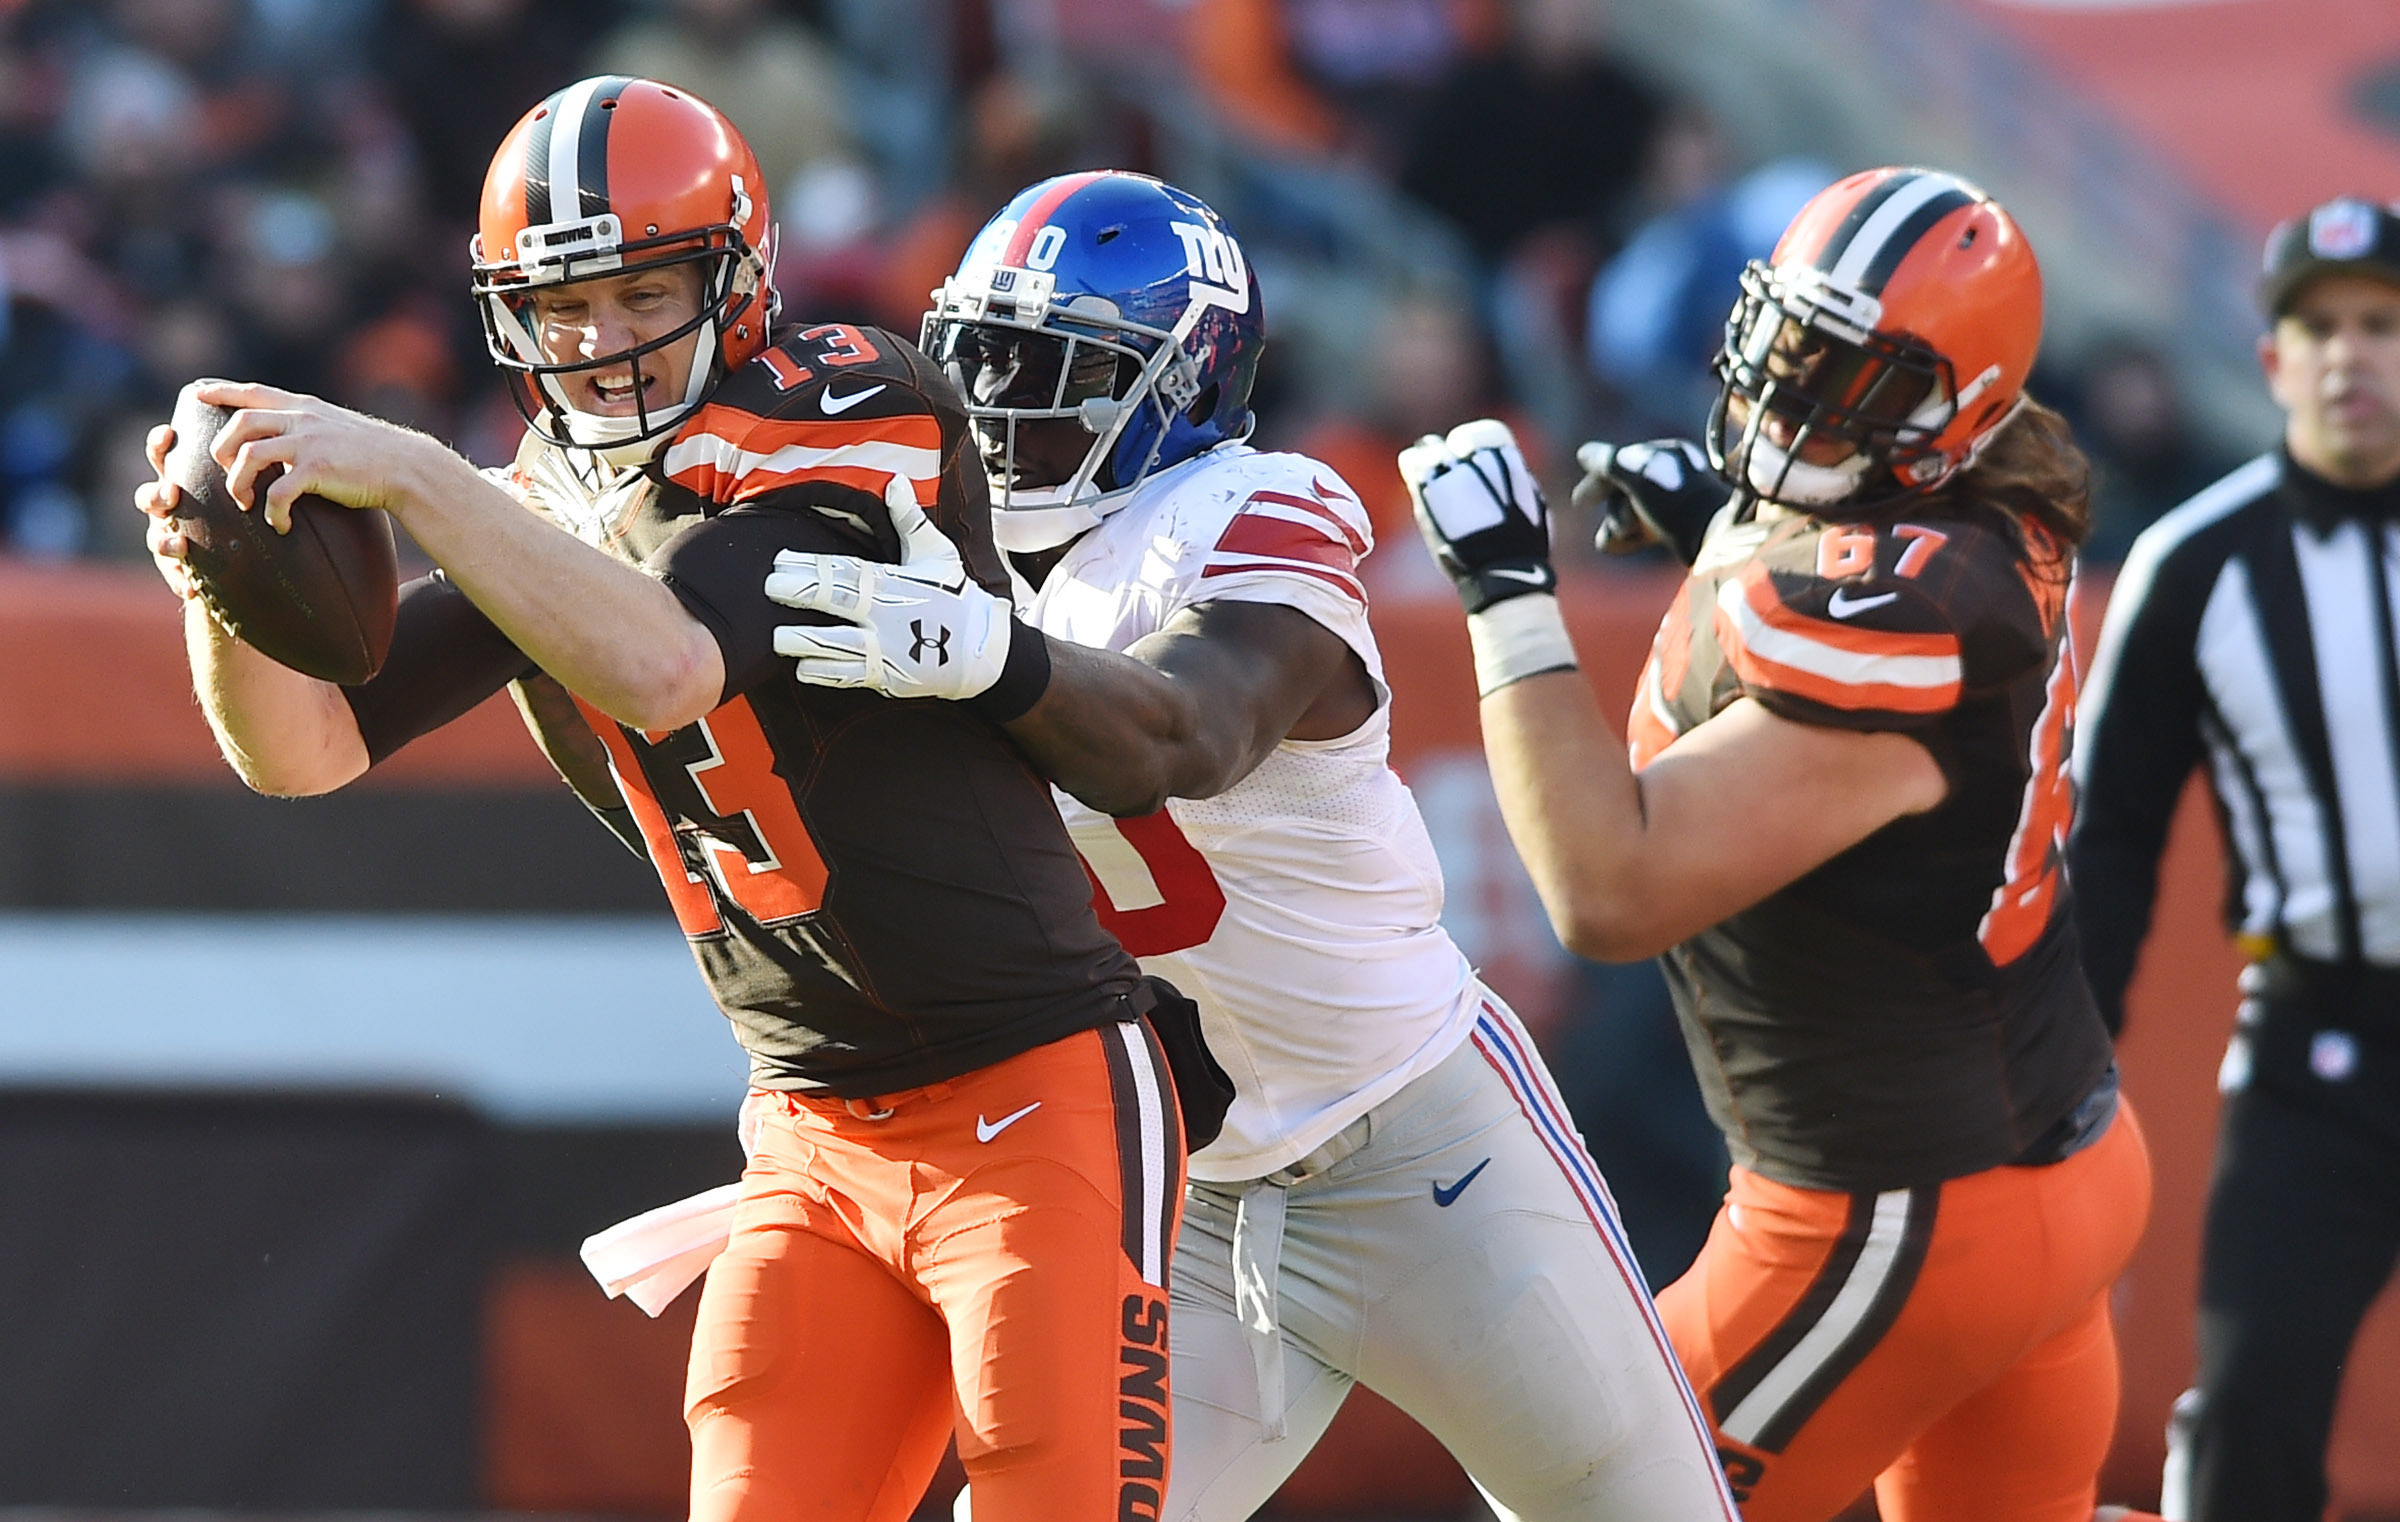 9708952-nfl-new-york-giants-at-cleveland-browns